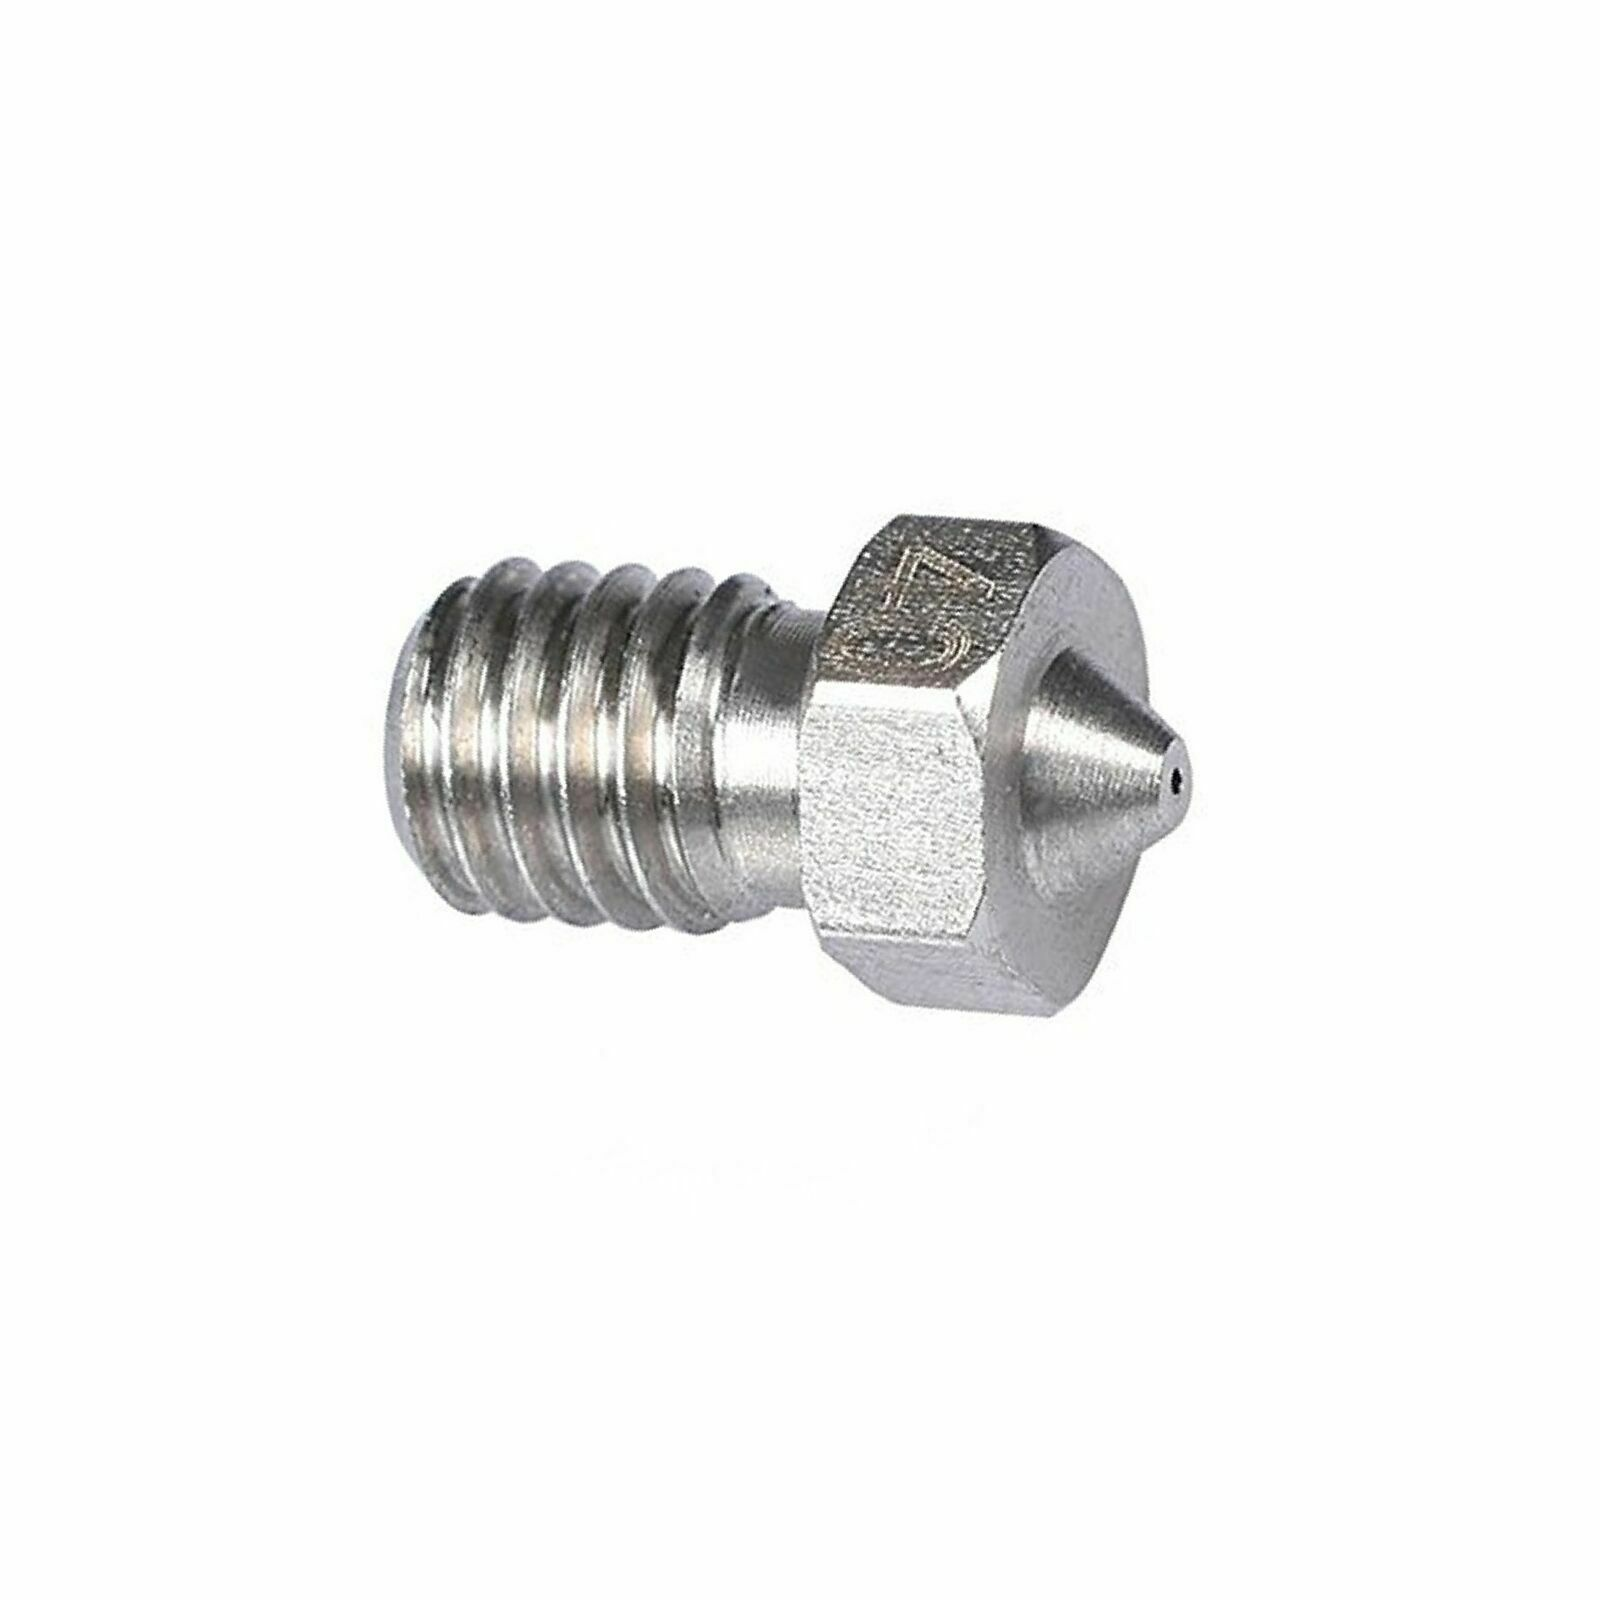 1.75mm FILAMENT  0.4MM MAKERBOT 5PC MK6 3D STAINLESS STEEL NOZZLE M6 ANYCUBIC